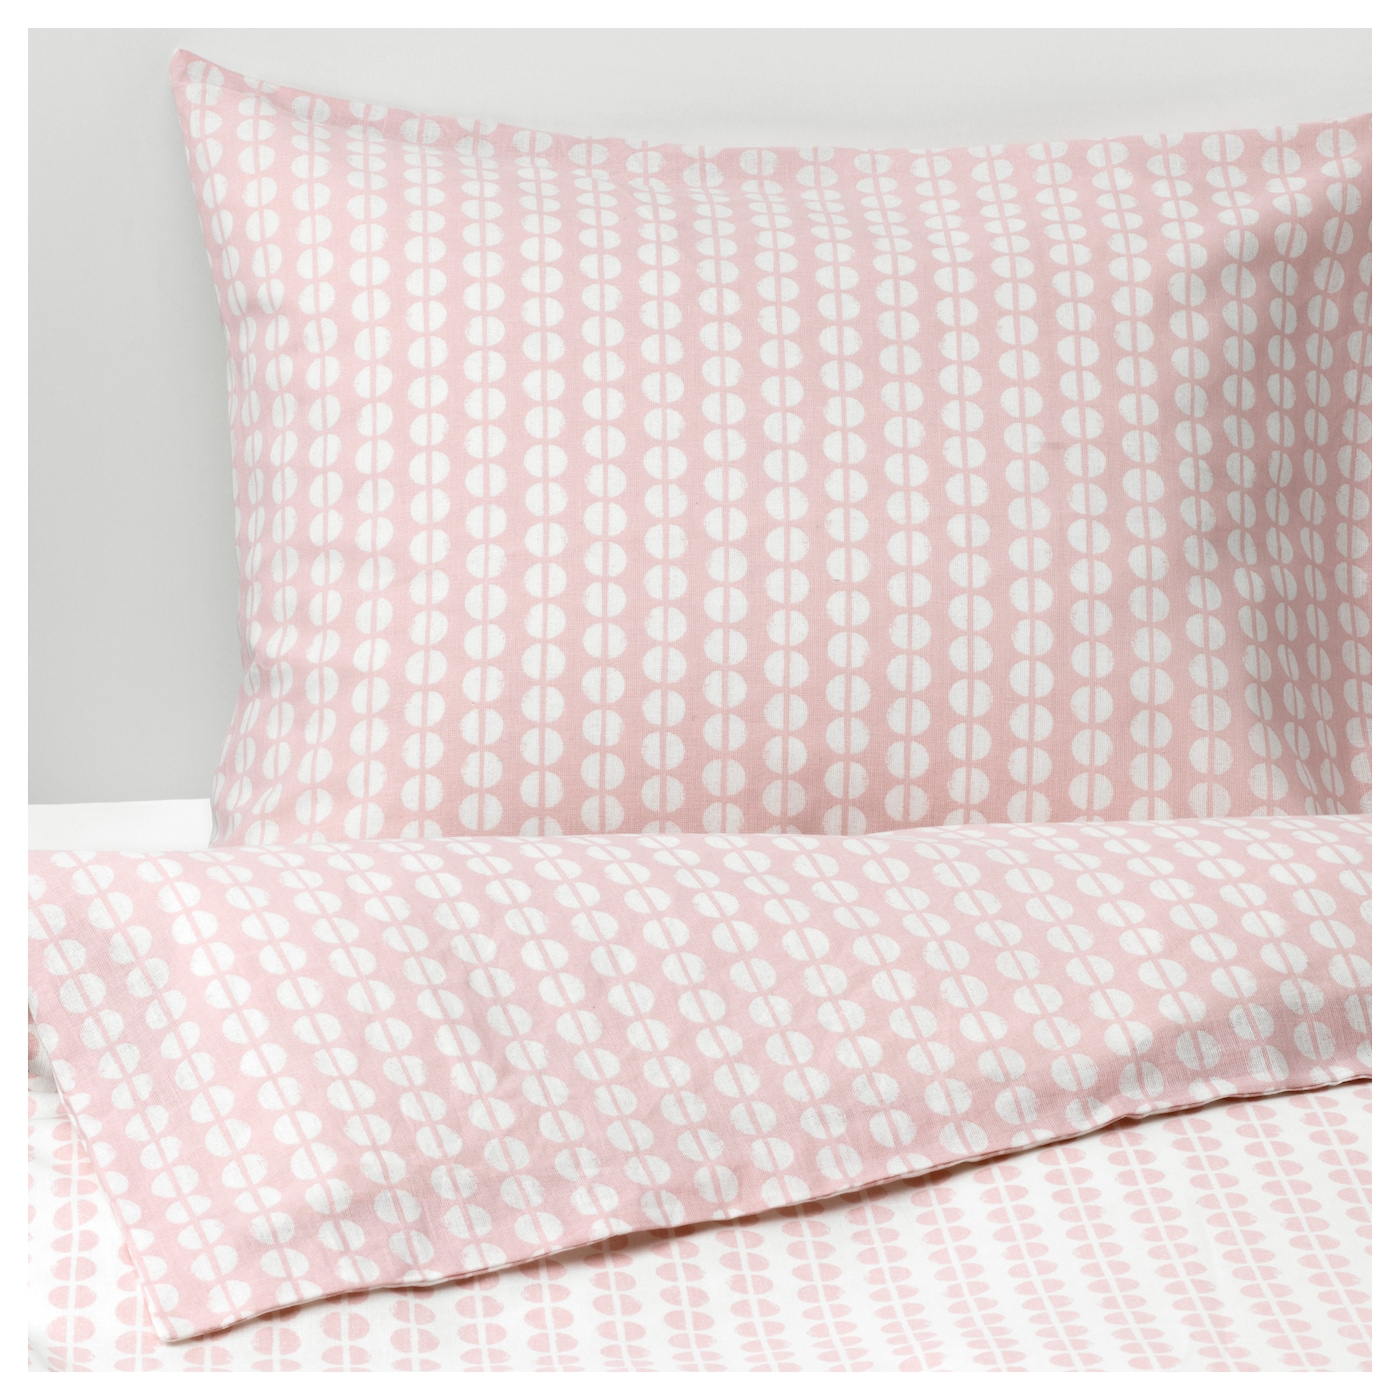 Fj llvedel quilt cover and 2 pillowcases pink 240x220 for Drap housse 200x200 ikea